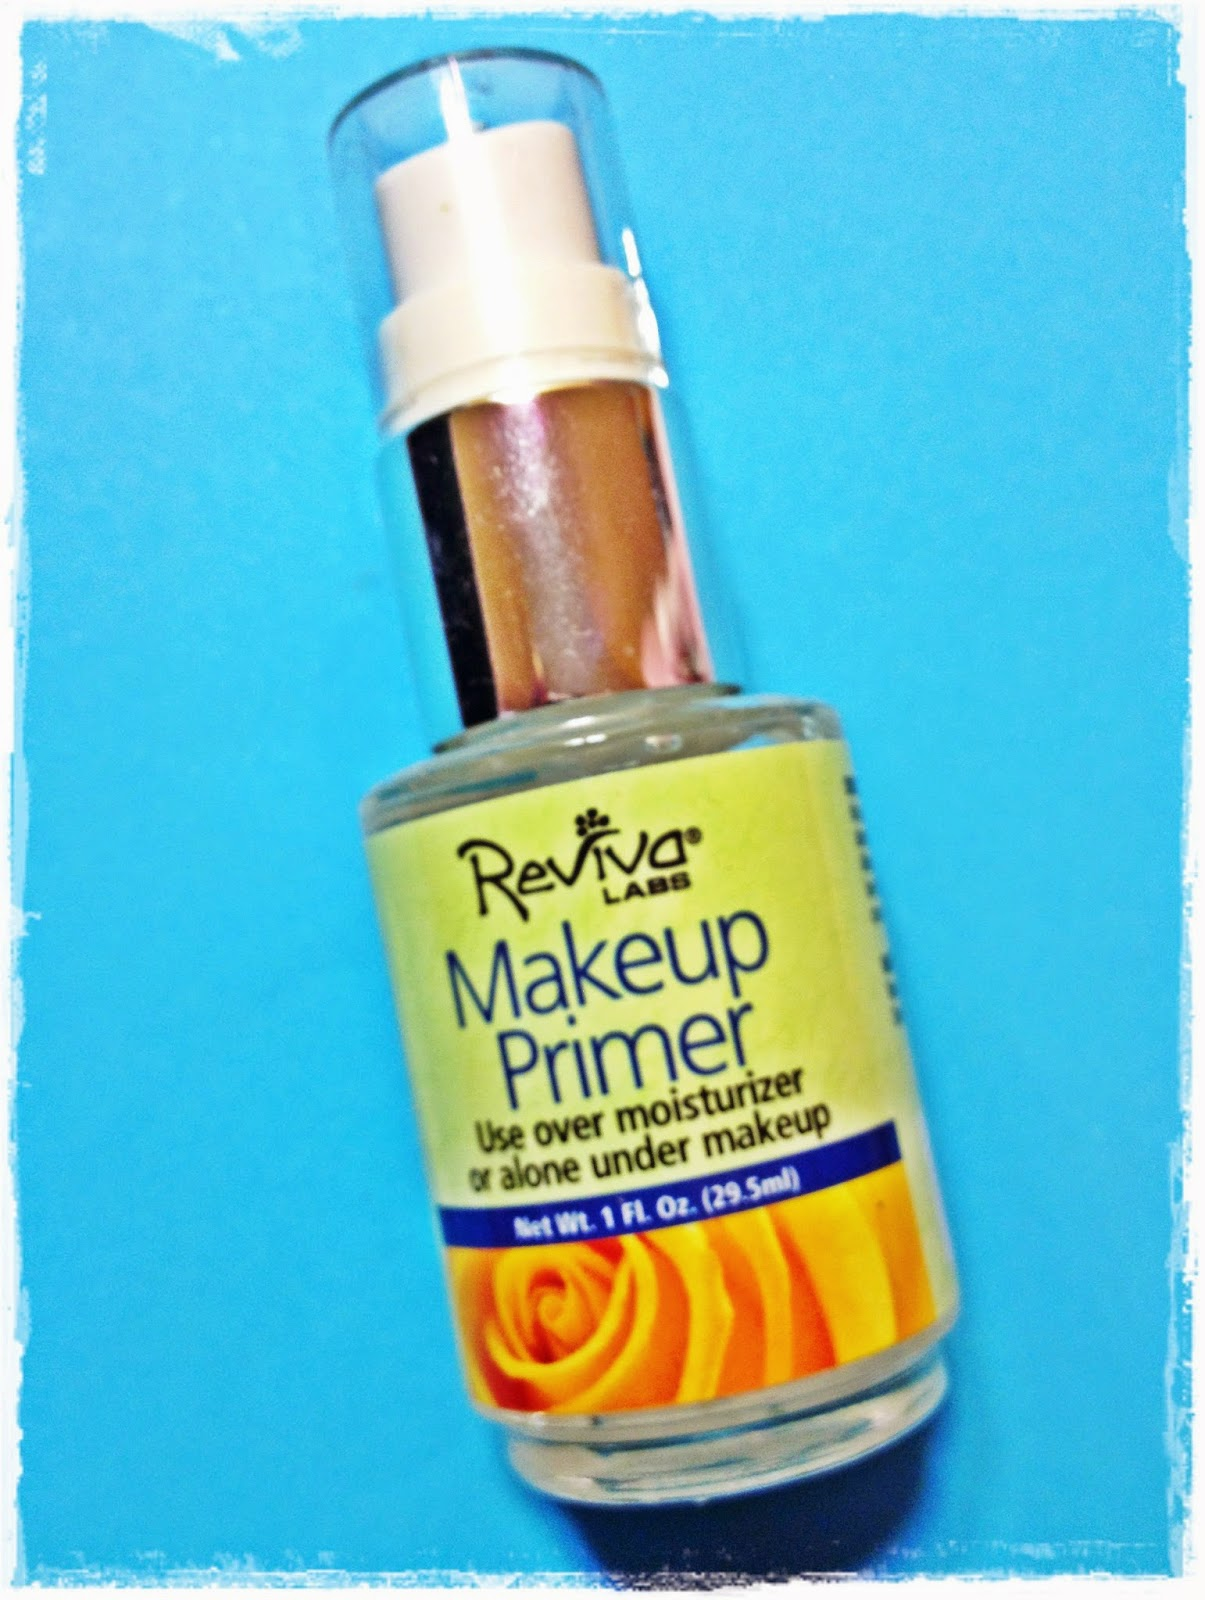 reviva labs makeup primer